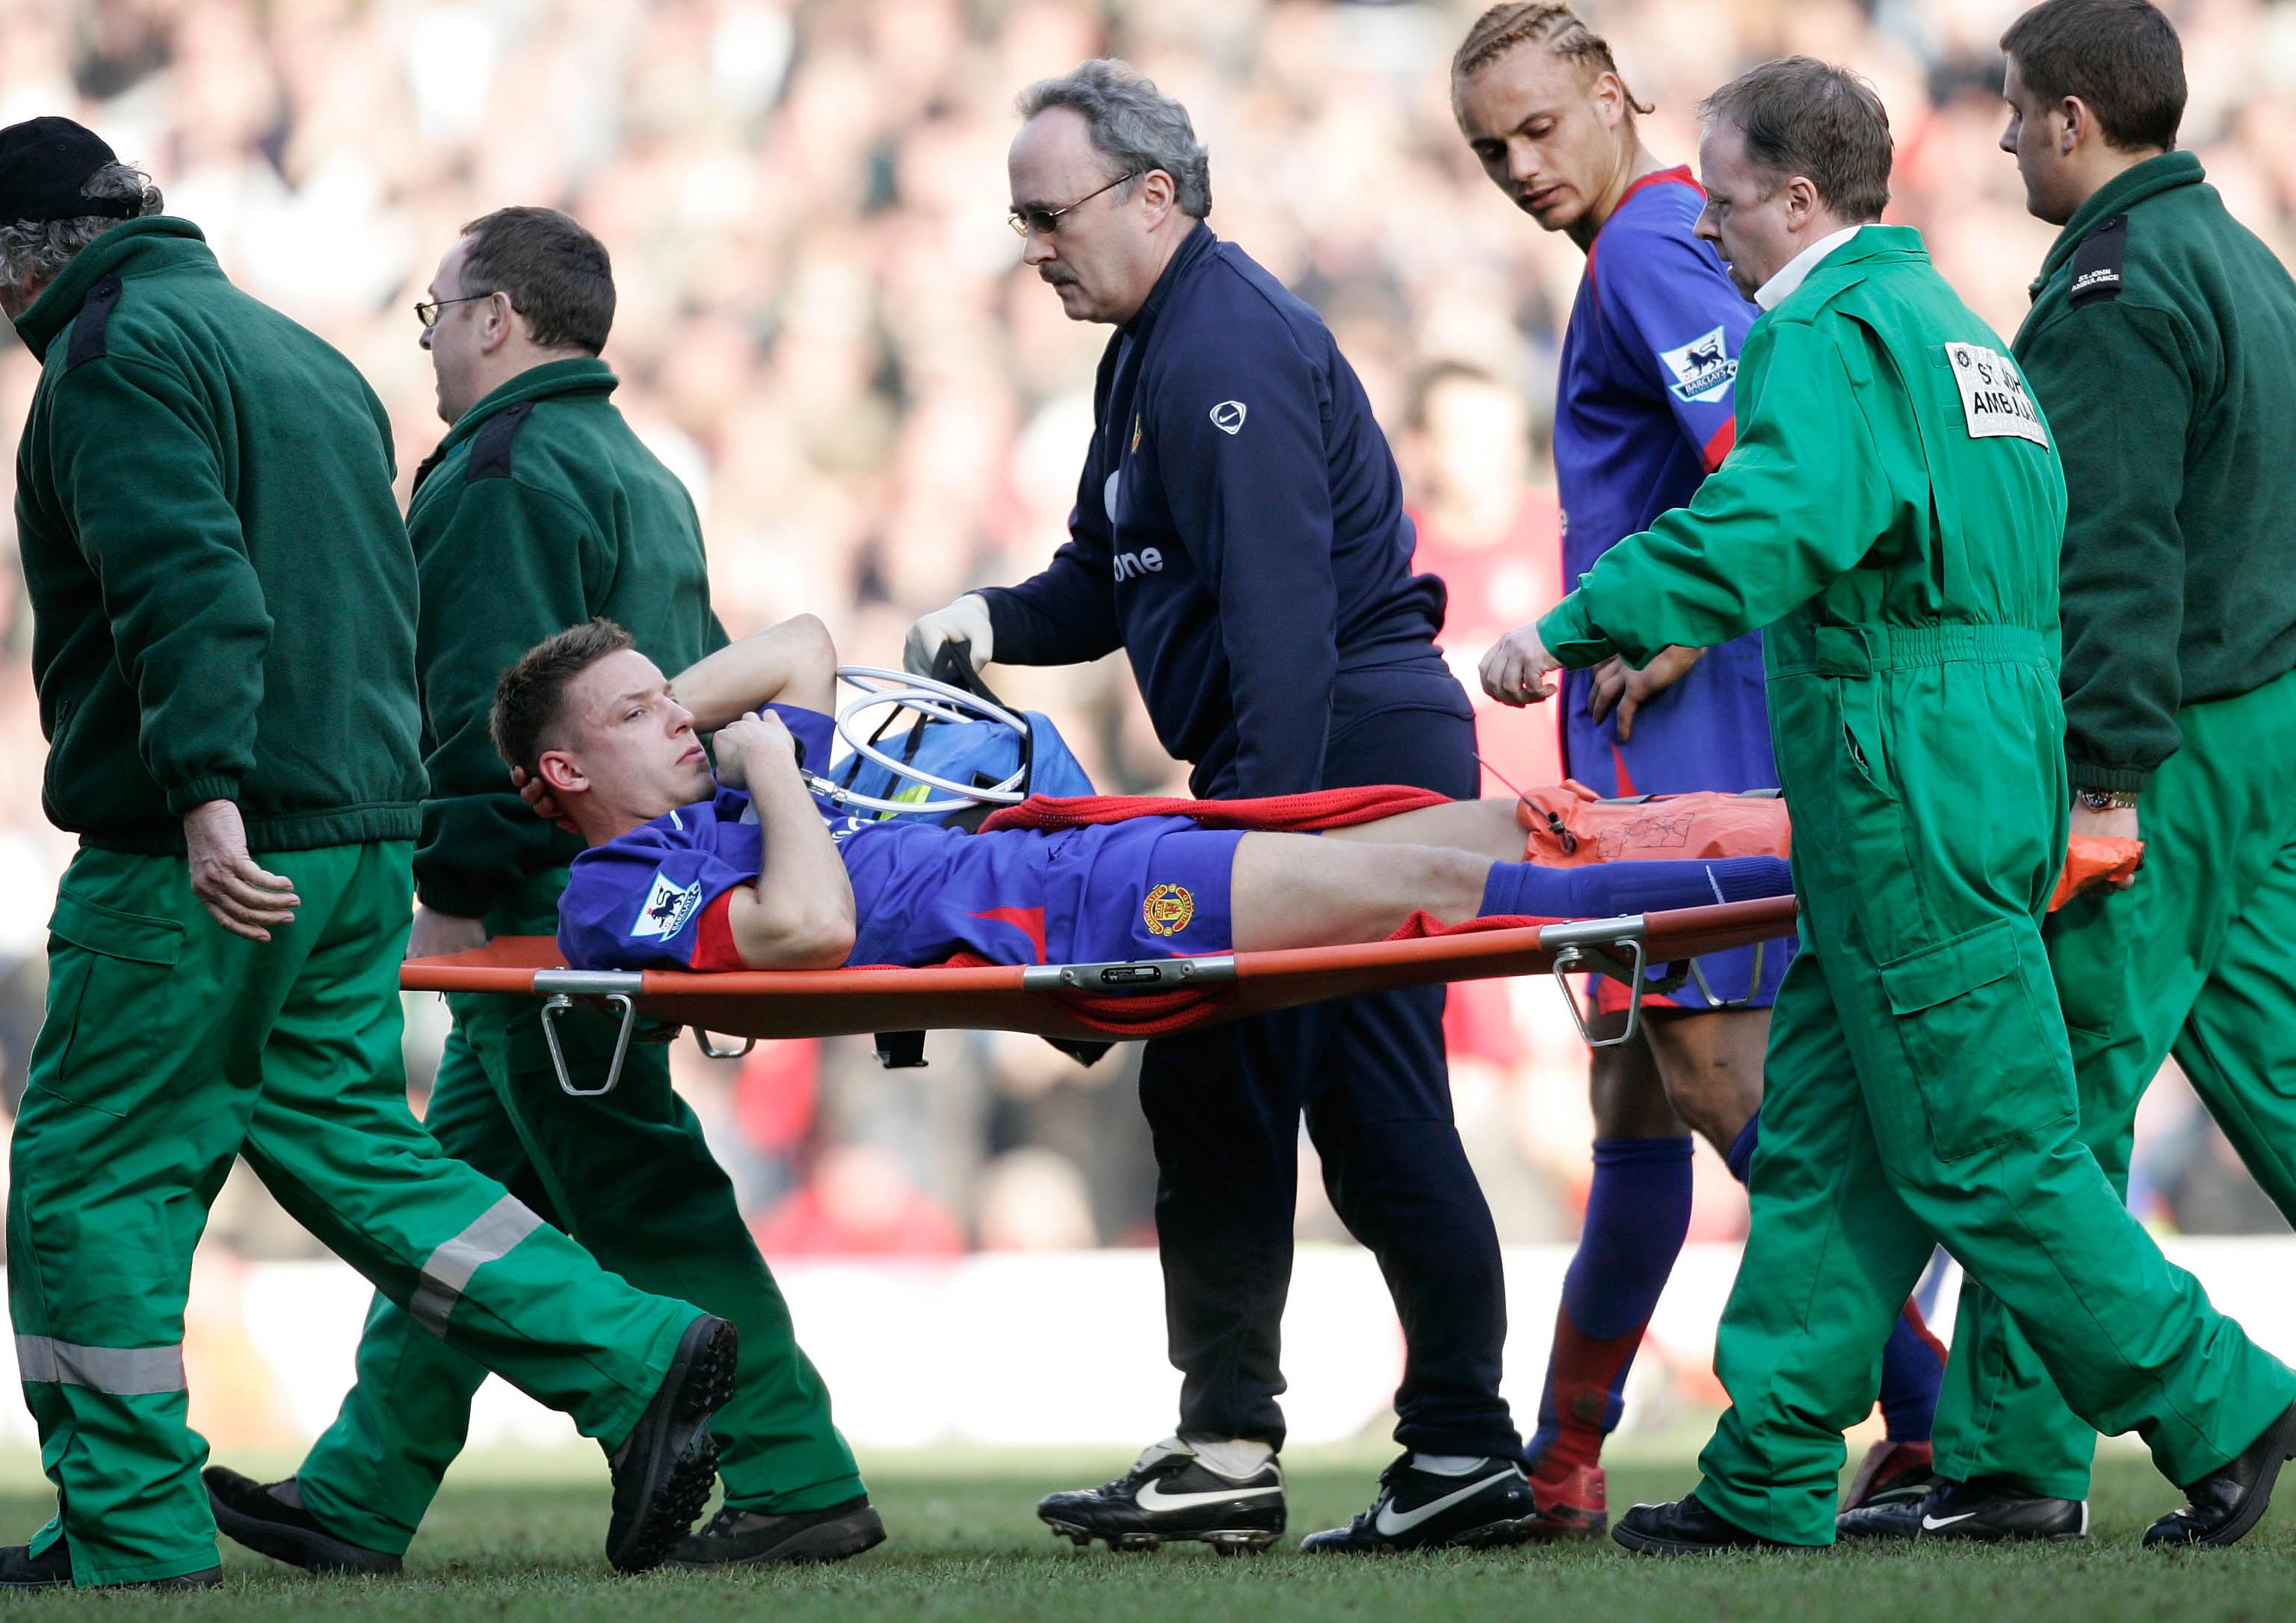 ALAN SMITH IS TAKEN OFF AFTER BREAKING HIS LEG IN THIS INCIDENT.